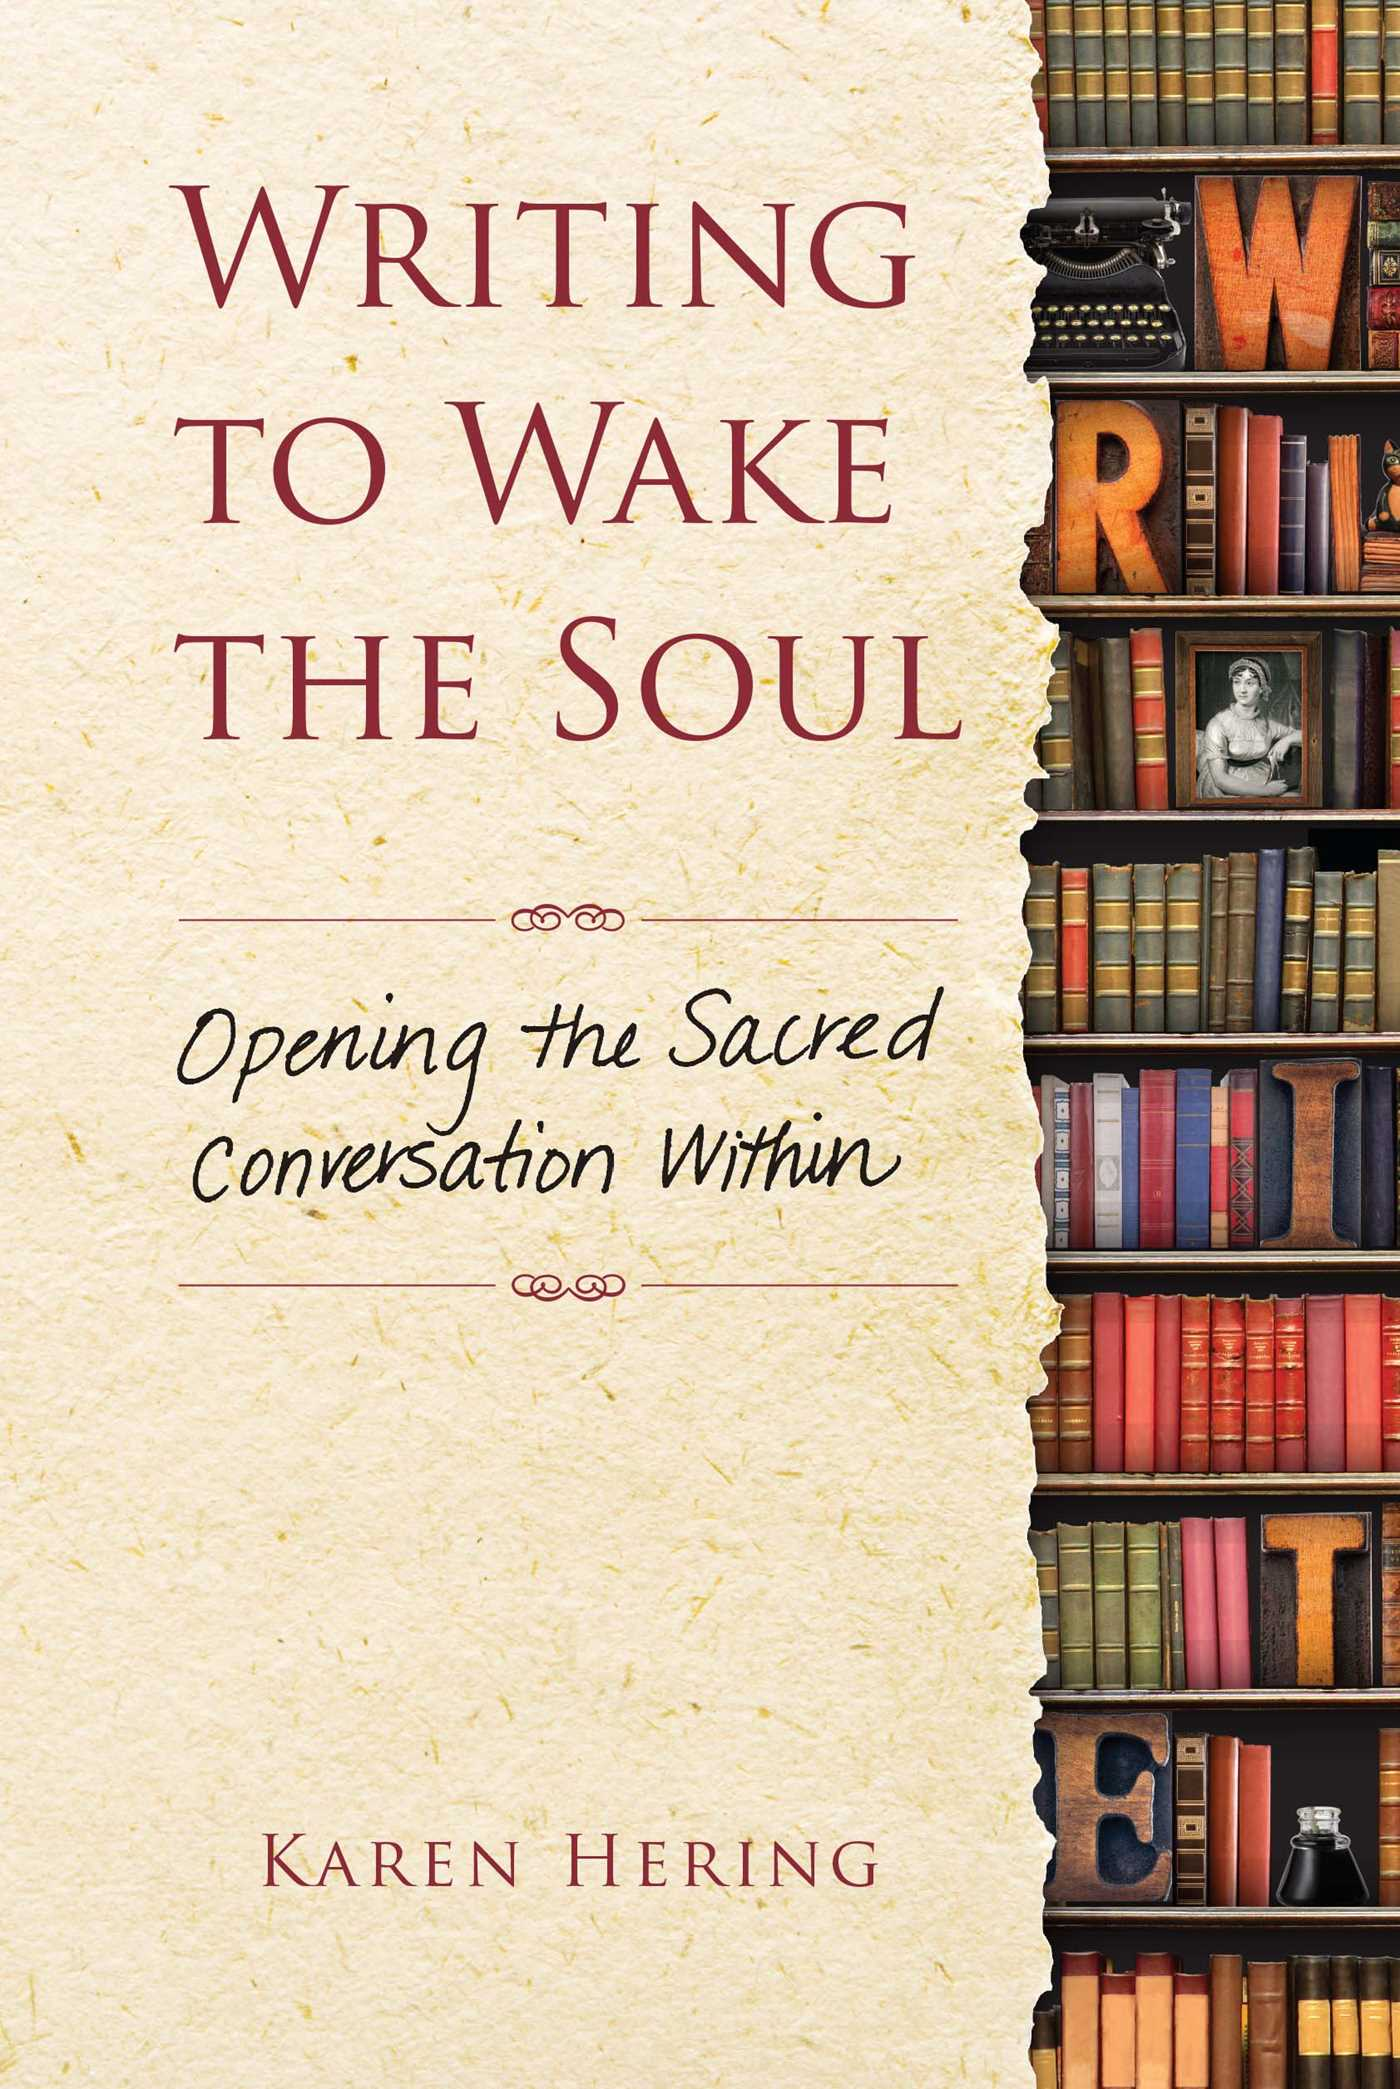 Writing to wake the soul 9781476706610 hr